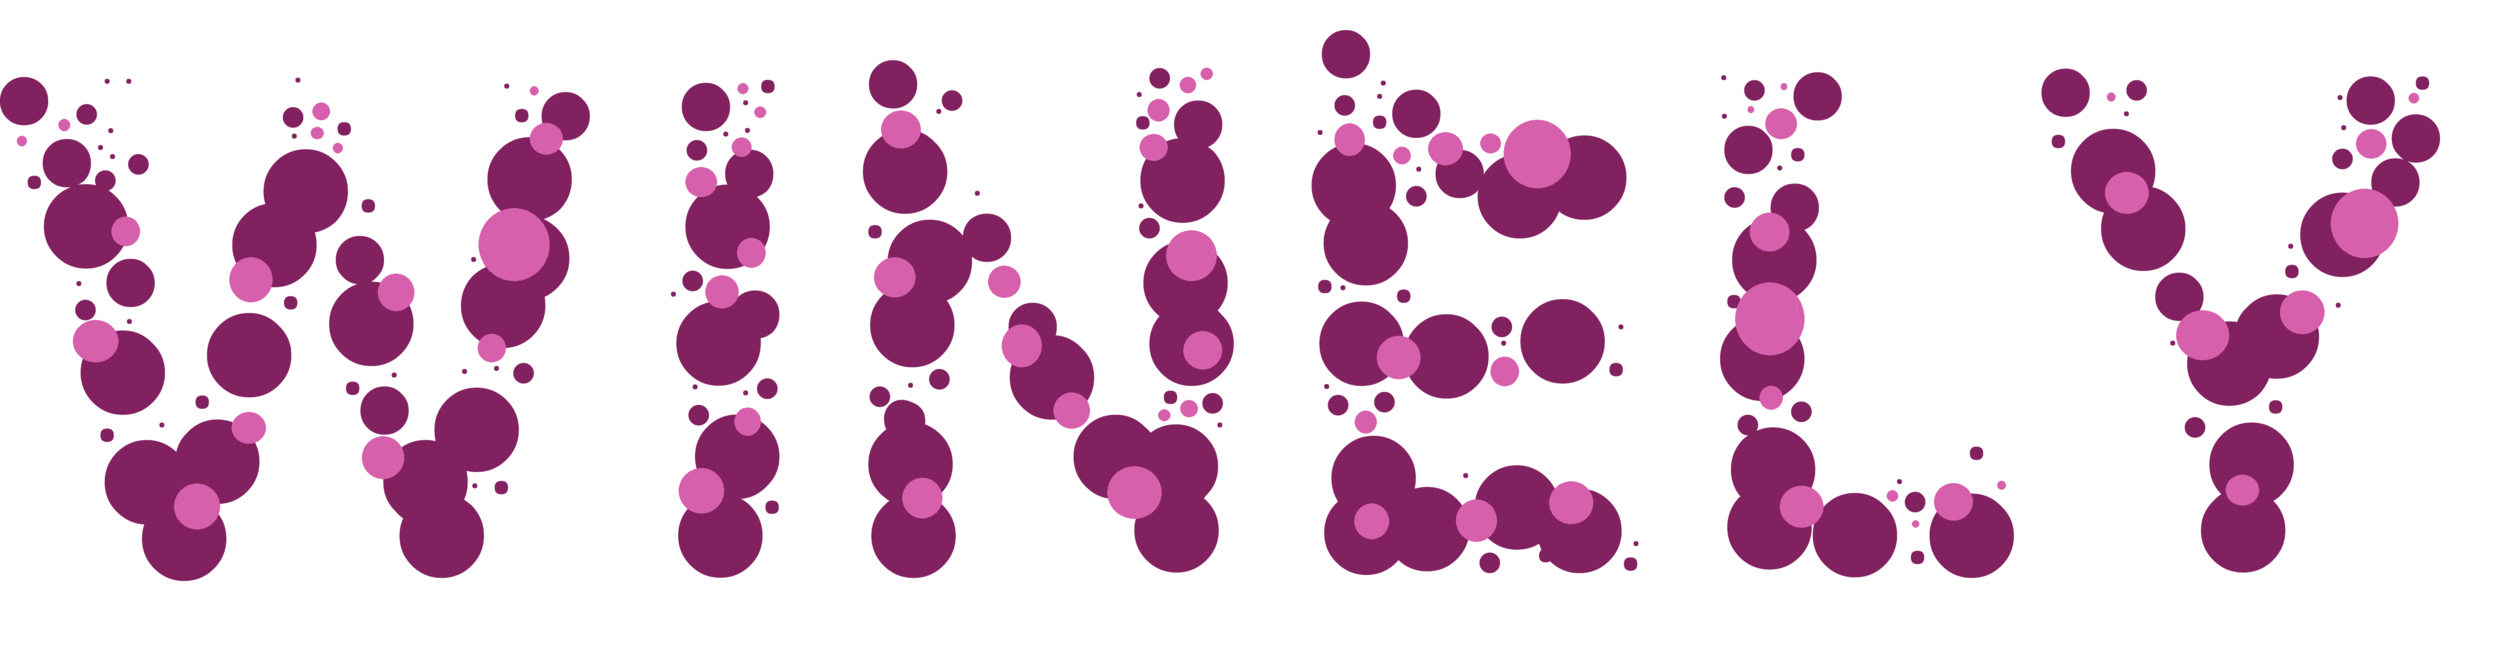 winely-logo2.0.png